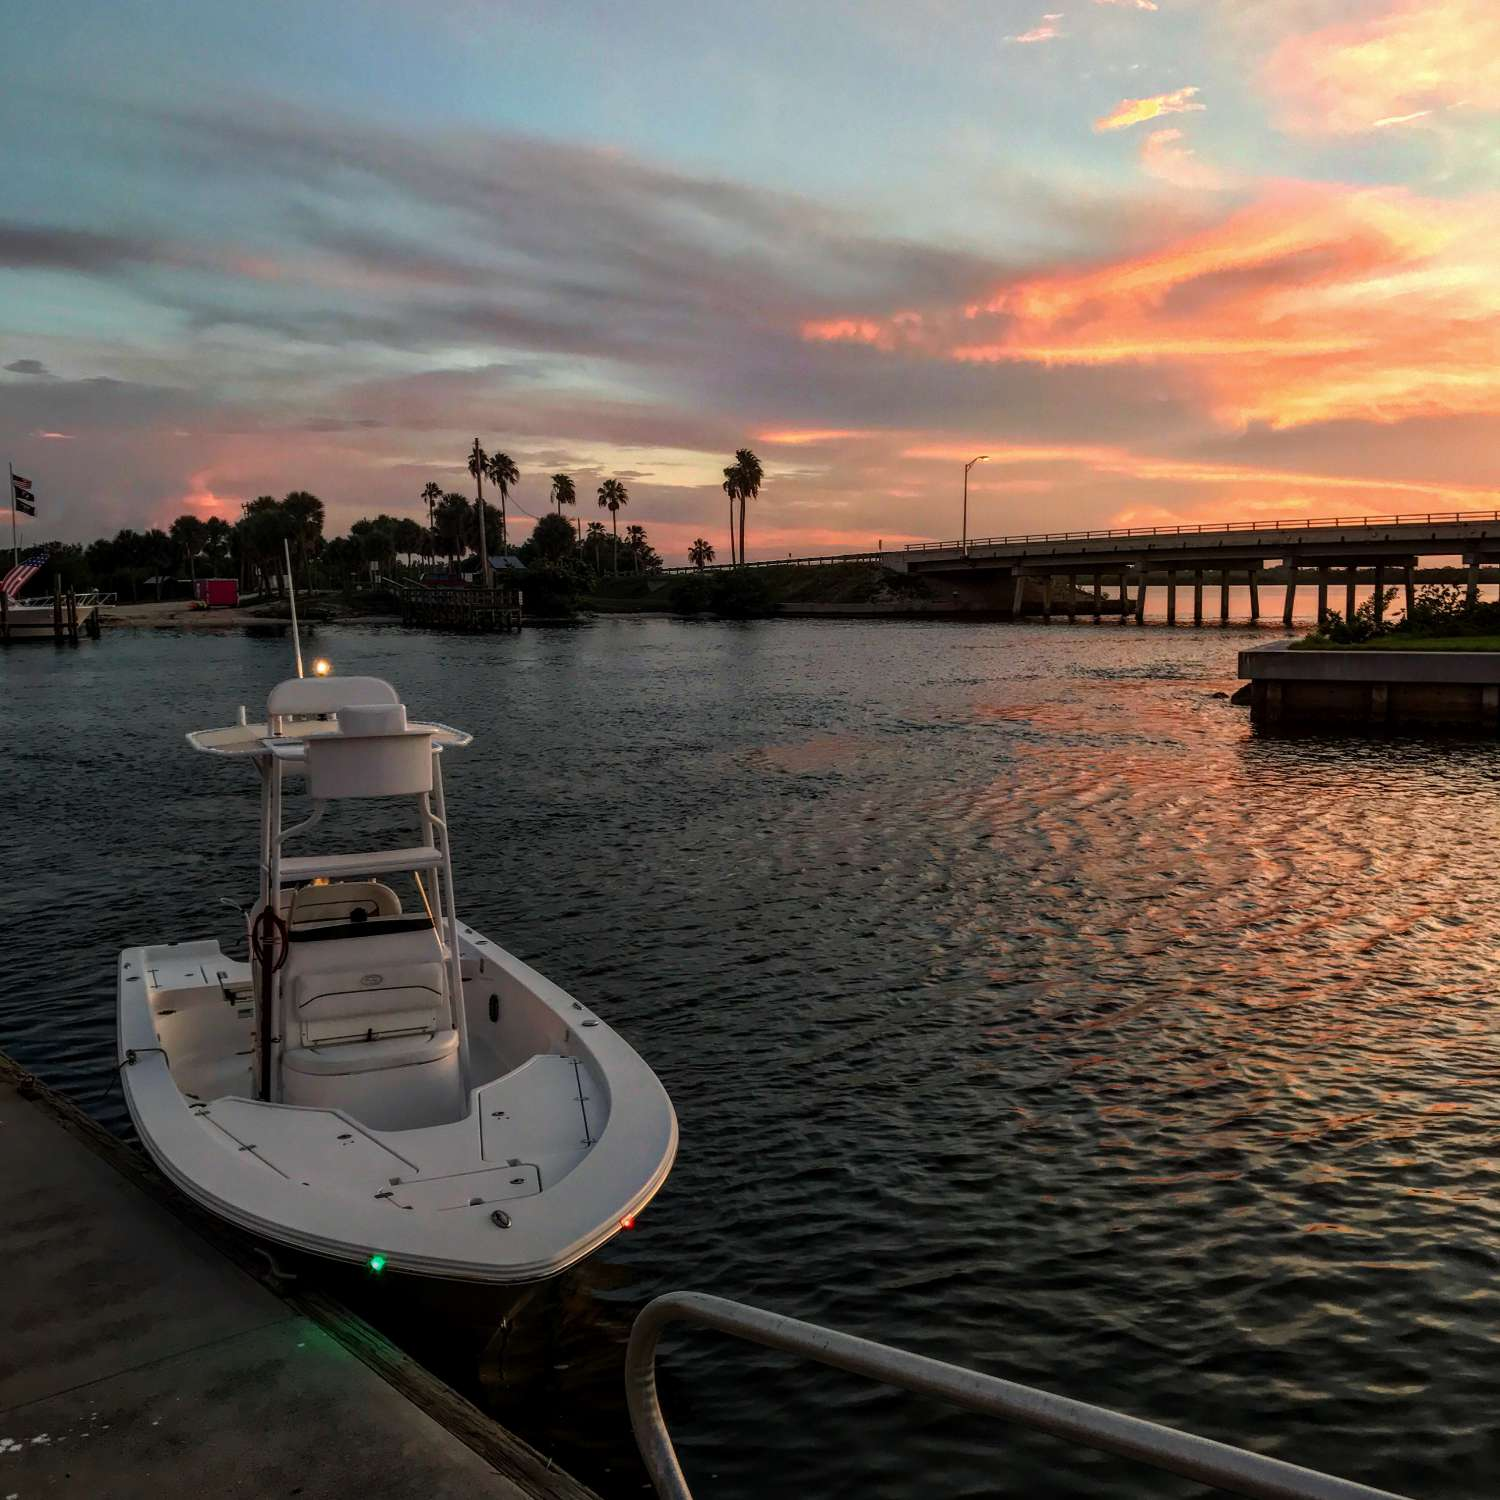 Title: Mini Season Sunsets - On board their Sportsman Masters 227 Bay Boat - Location: Ft Pierce, Florida. Participating in the Photo Contest #SportsmanAugust2017